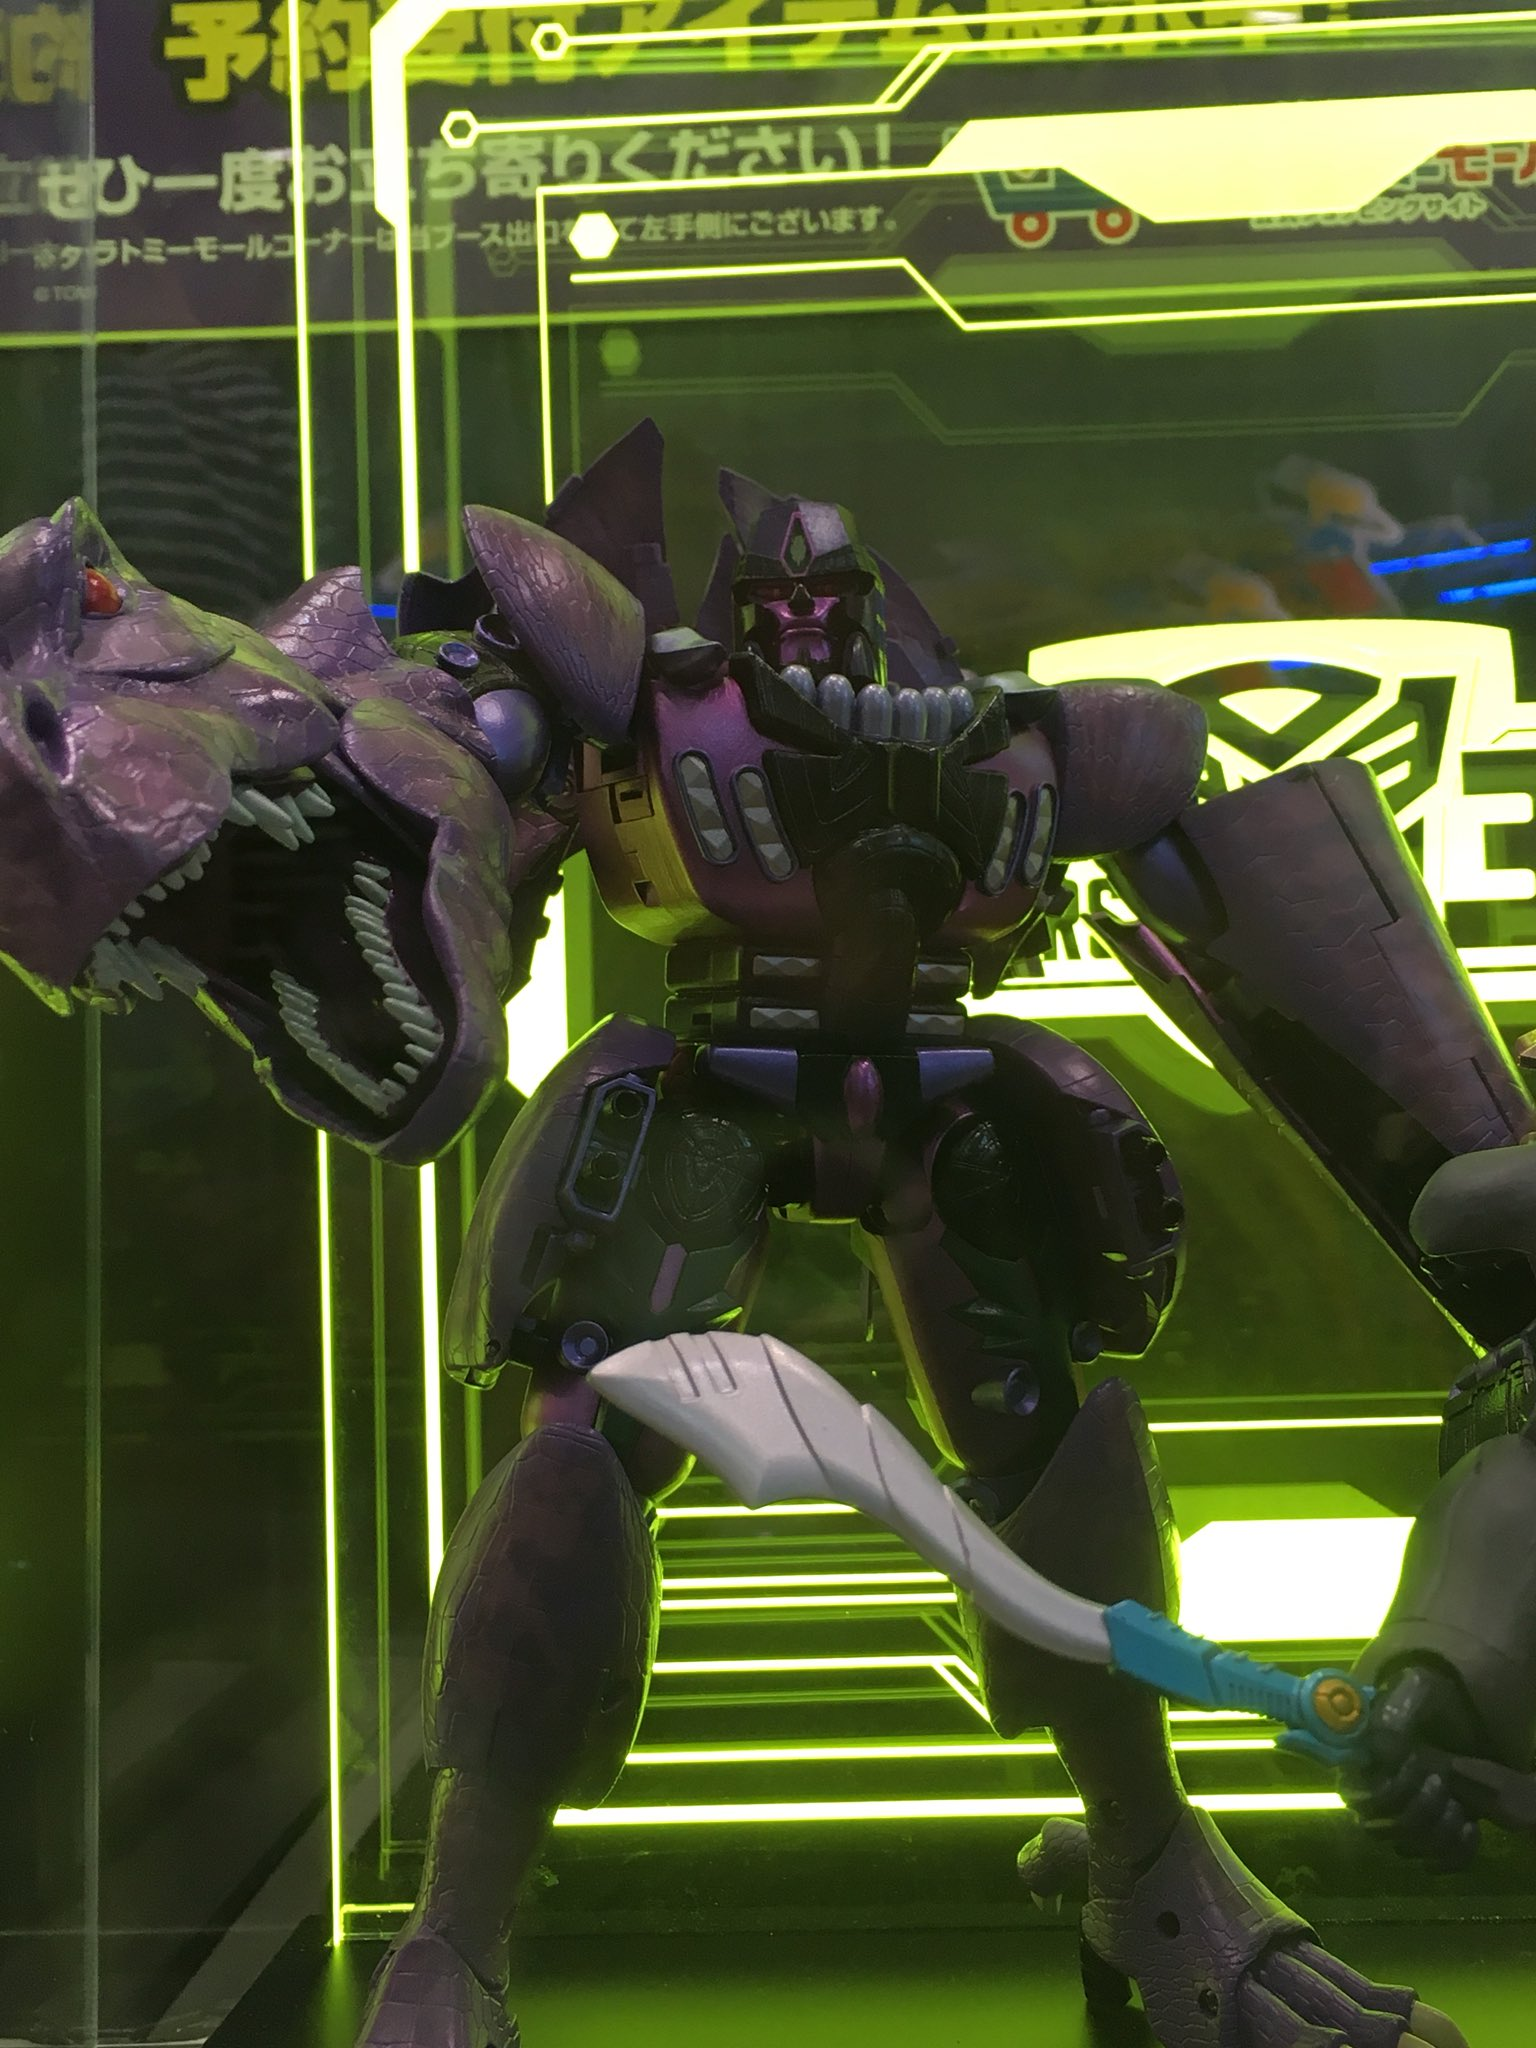 [Masterpiece] MP-43 Mégatron (Beast Wars) - Page 2 3GnIc8cw_o